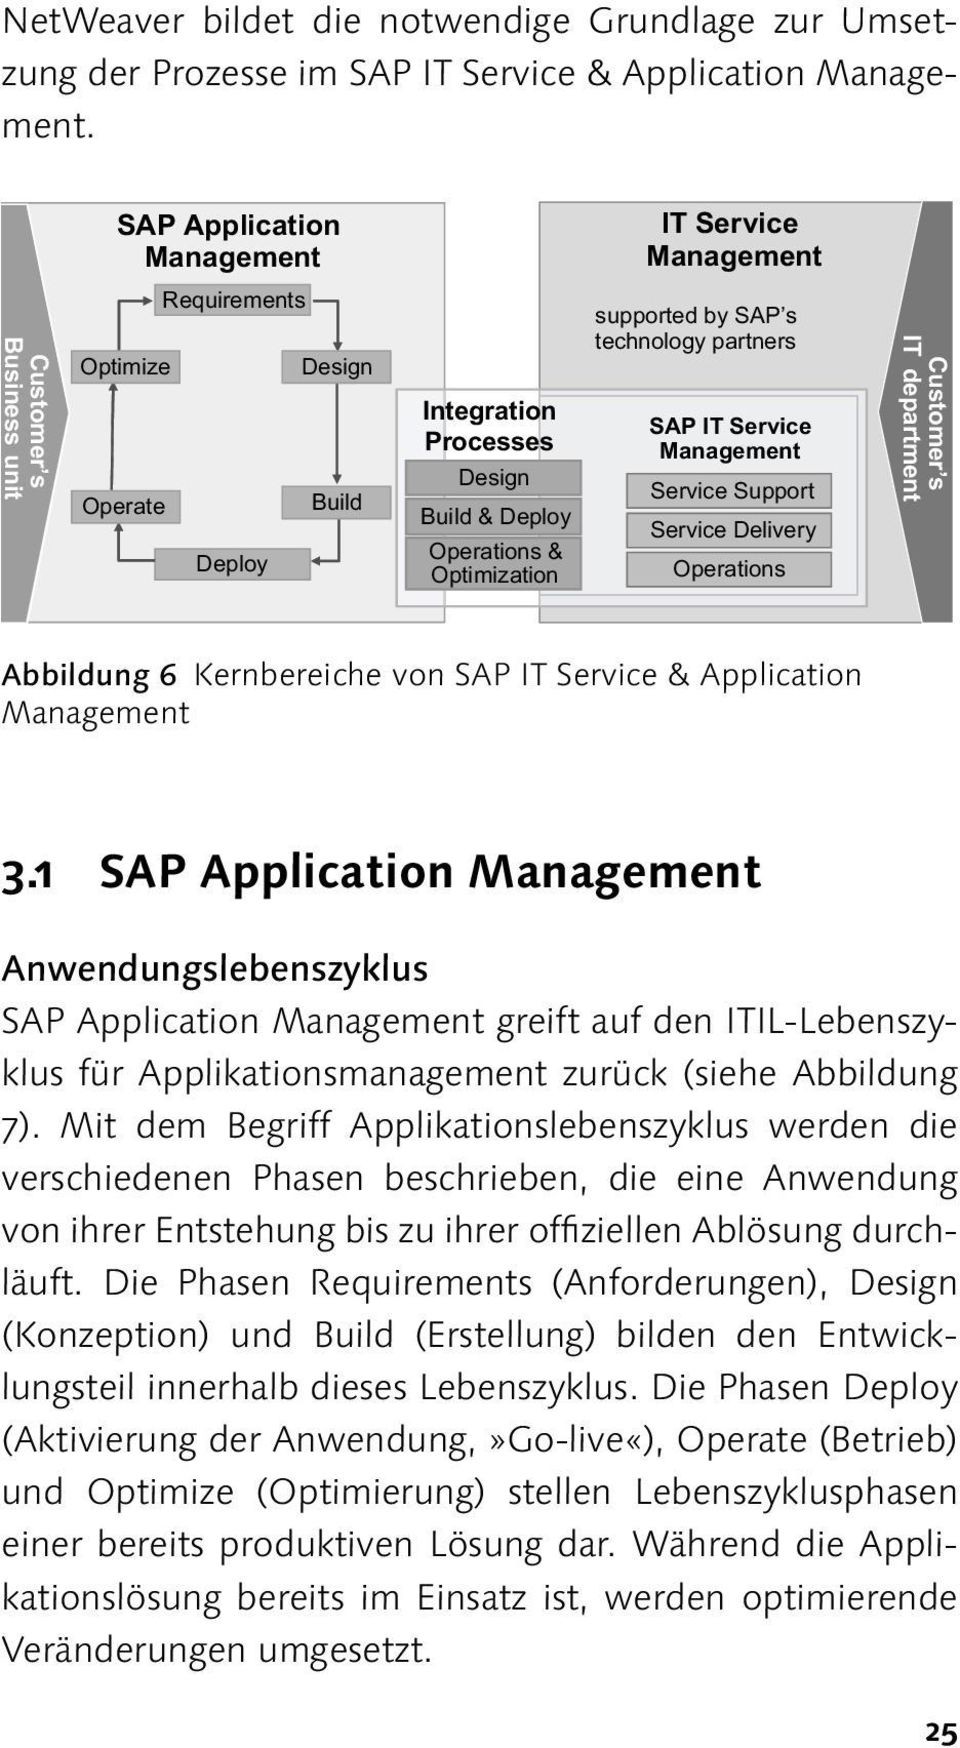 technology partners SAP IT Service Service Support Service Delivery Operations Customer s IT department Abbildung 6 Kernbereiche von SAP IT Service & Application 3.